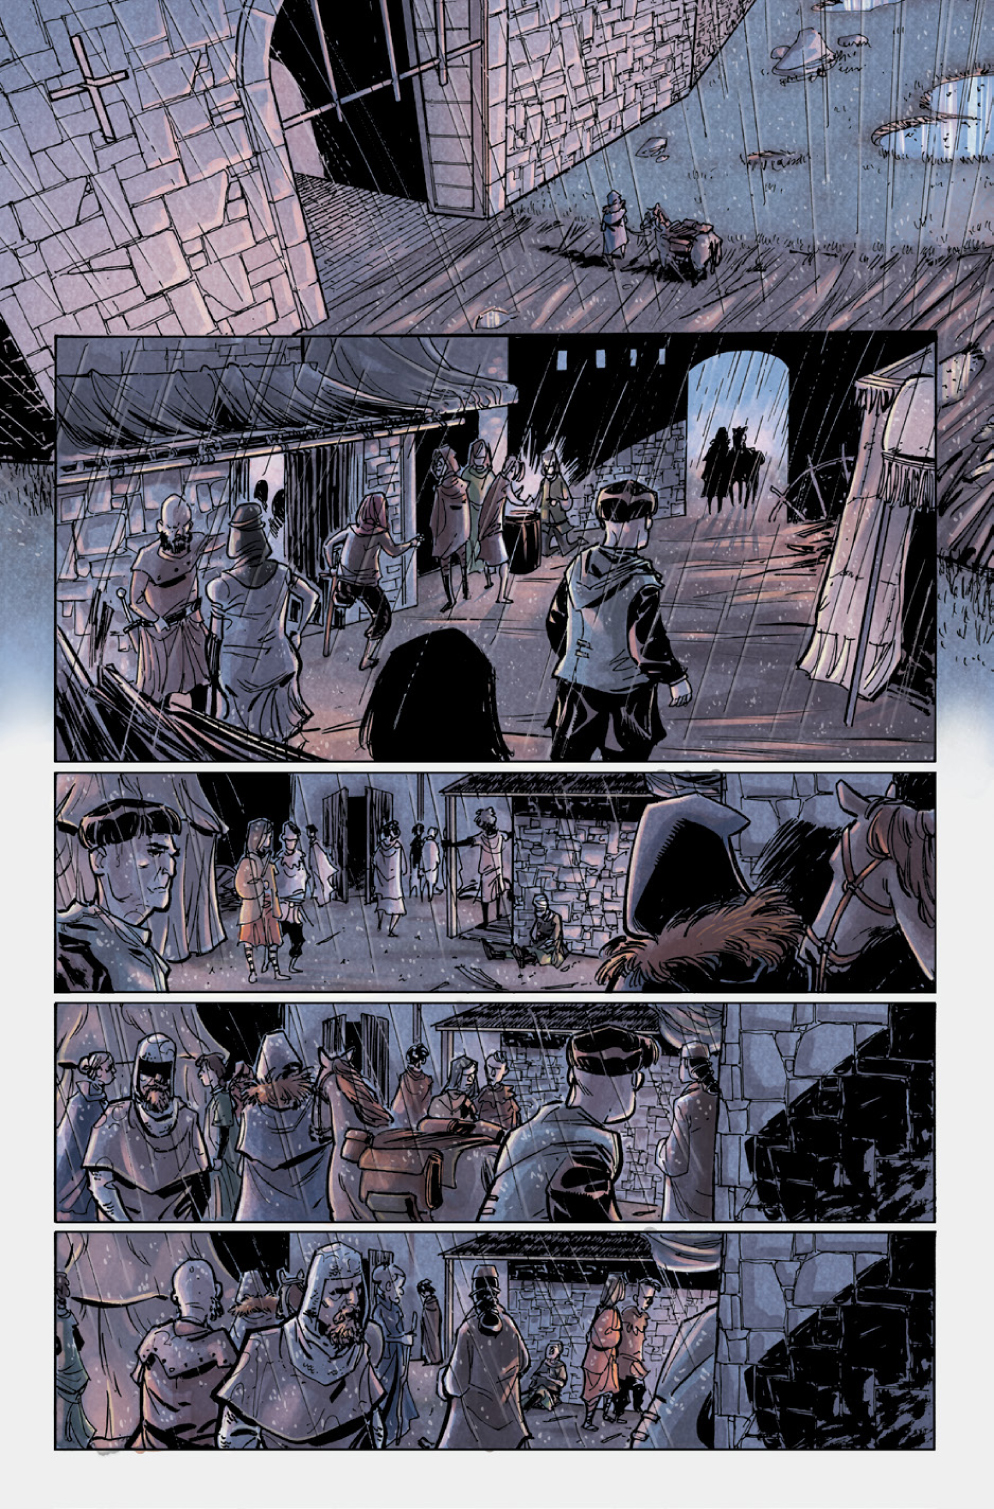 THE LAST SIEGE #1 PG 01-26 PREVIEW-7.jpg